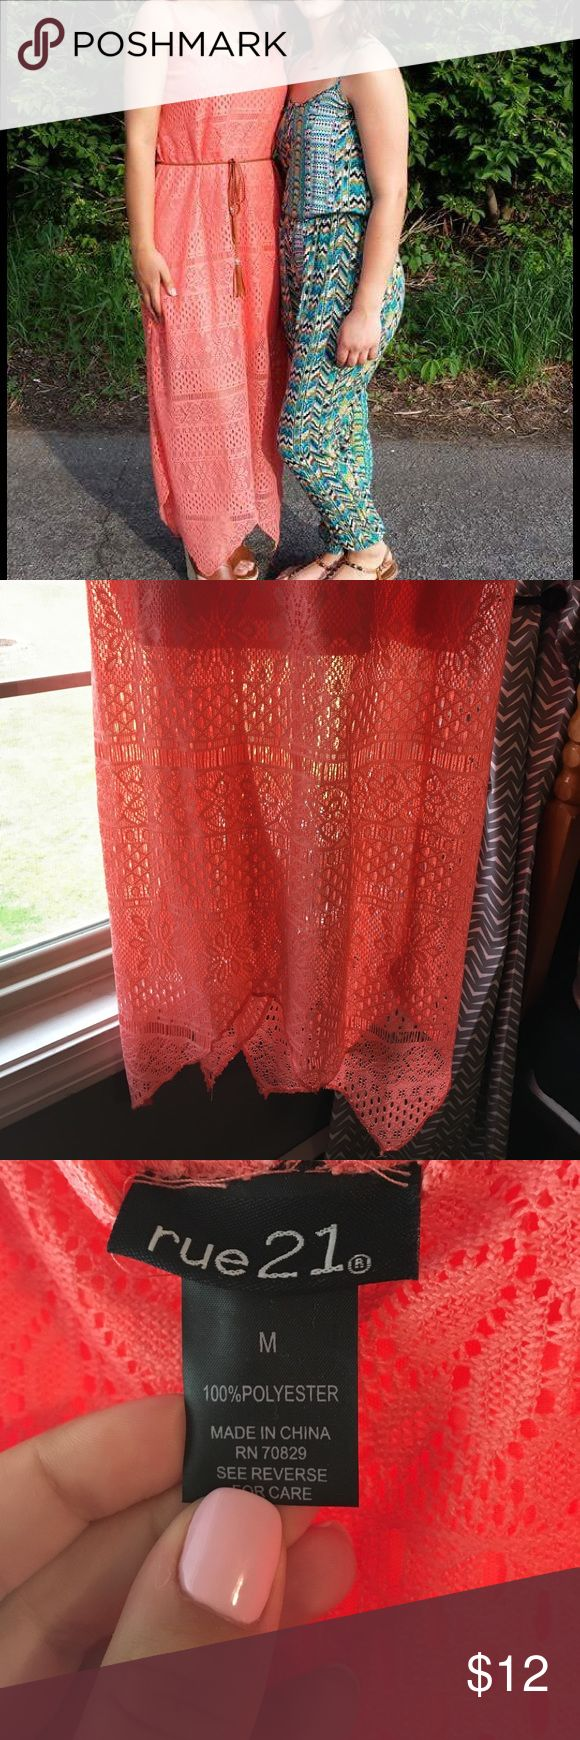 Summer Coral Maxi Dress Lace Maxi dress. Nice detailing. Will come with belt as seen in picture. Worn once. Rue21 Dresses Maxi